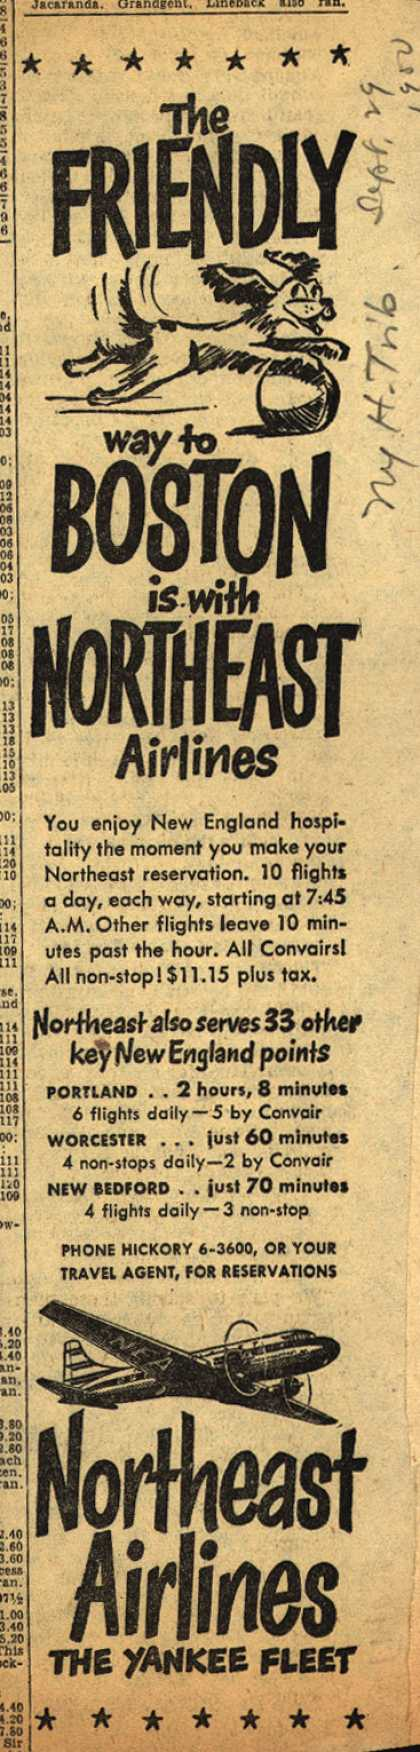 Northeast Airline's Boston – The FRIENDLY way to BOSTON is with NORTHEAST Airlines (1952)